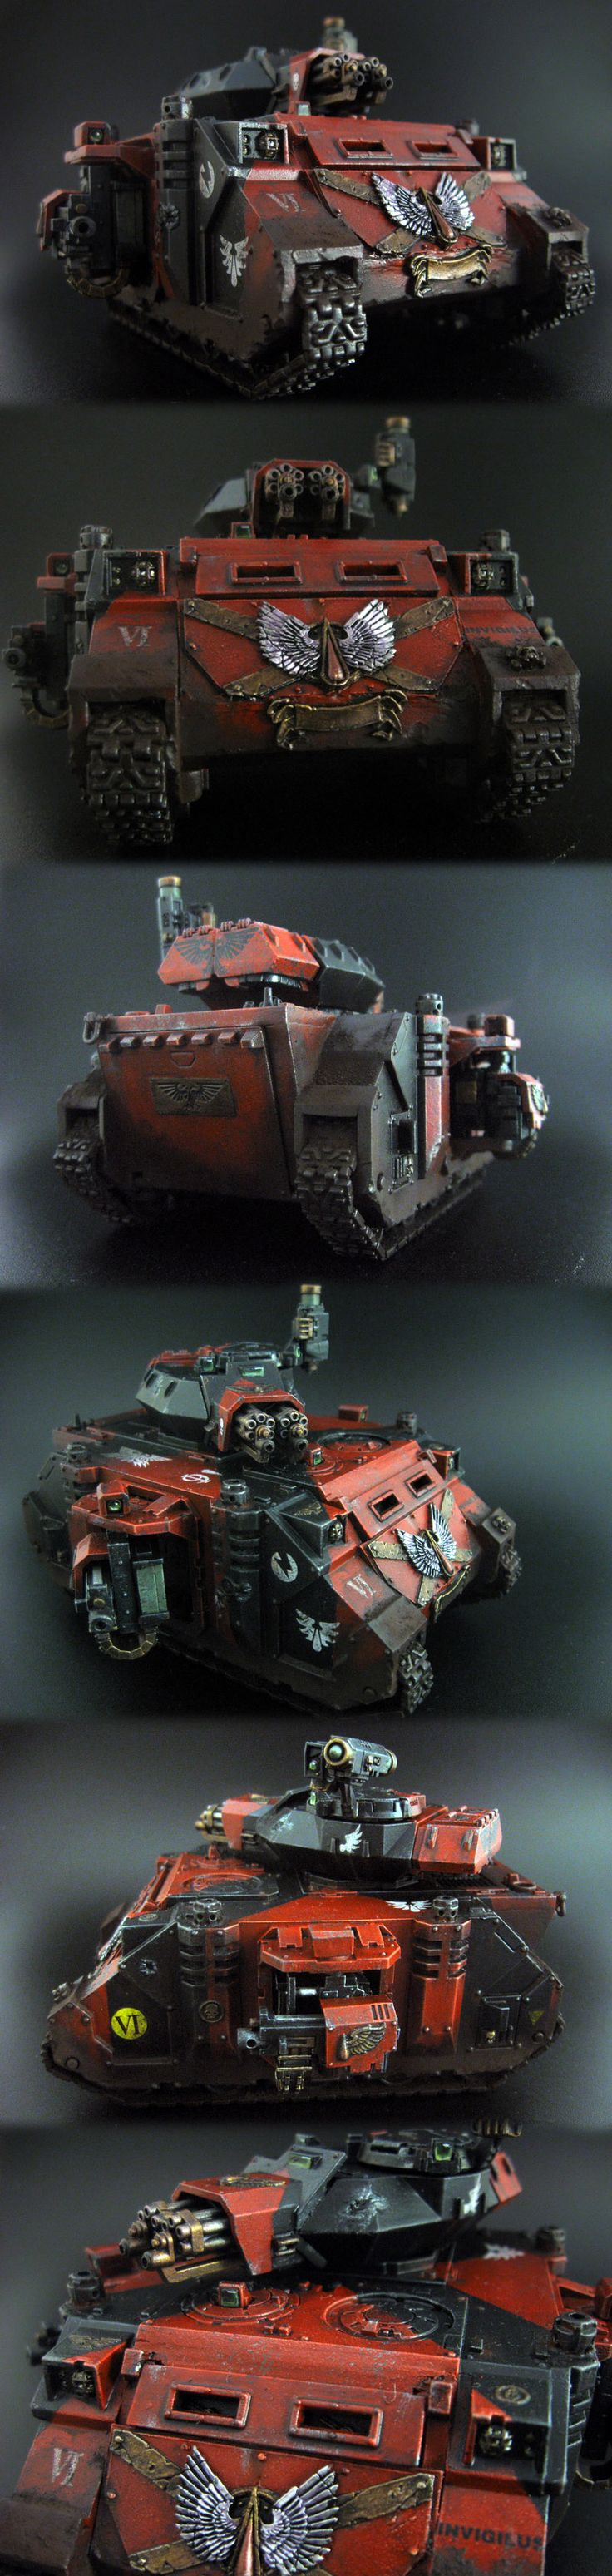 Blood Angels Army Project (pic carpet bombing) - Page 50